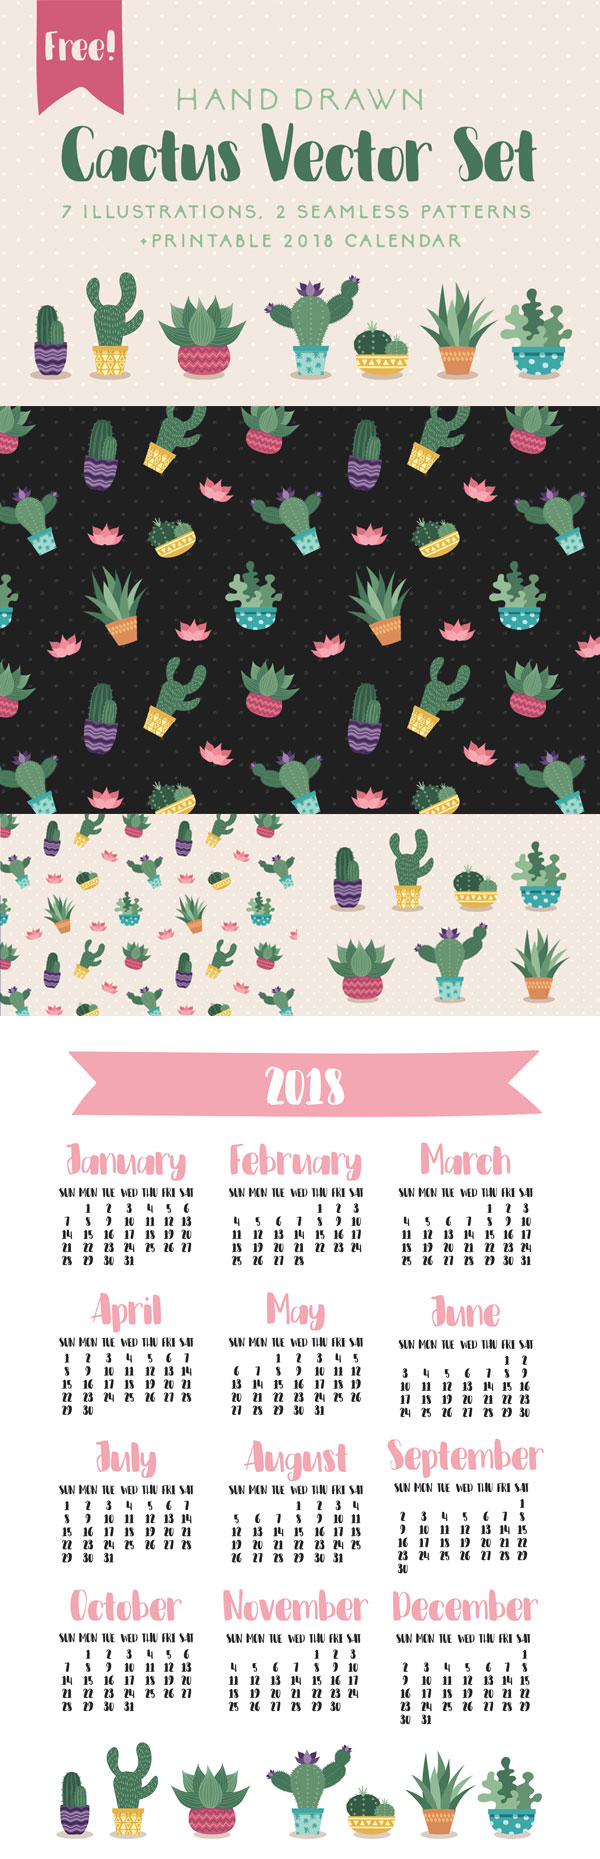 Free-Ai-Hand-drawn-Cactus-Vector-Set-With-7-Illustrations,-2-Seamless-Patterns-&-2018-Printable-Calendar